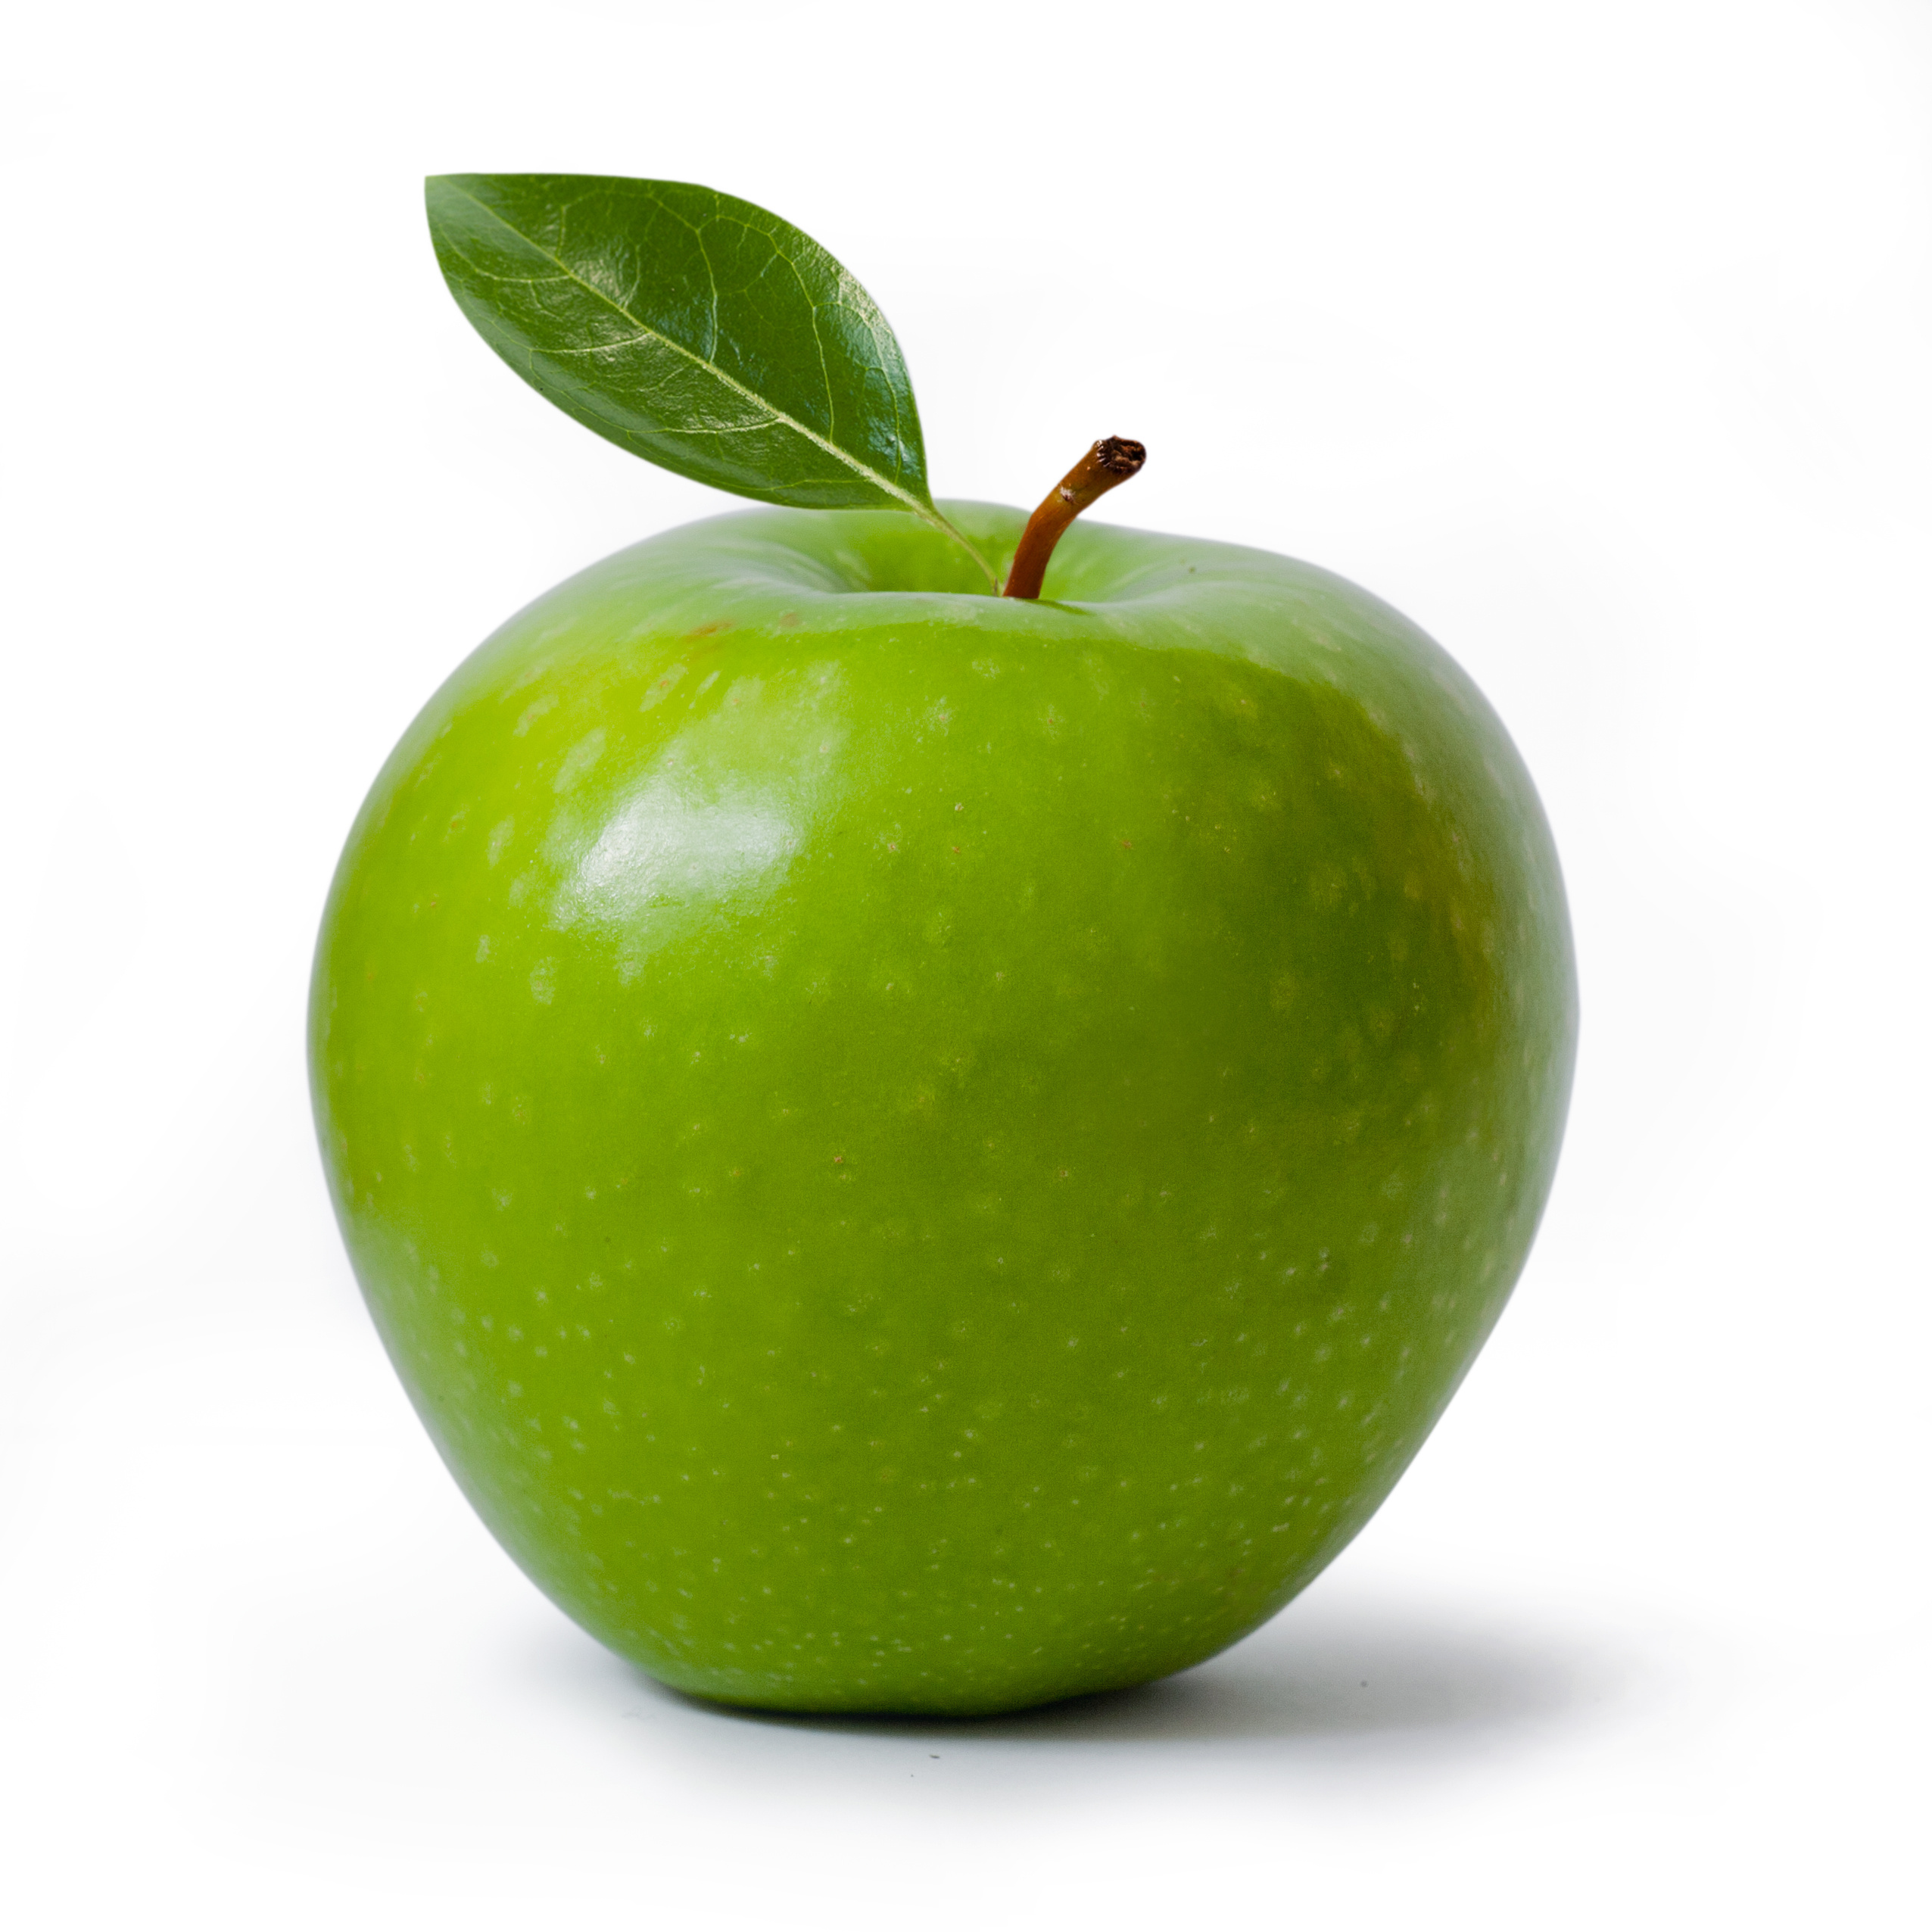 green Granny Smith apple isolated on white, clipping path included